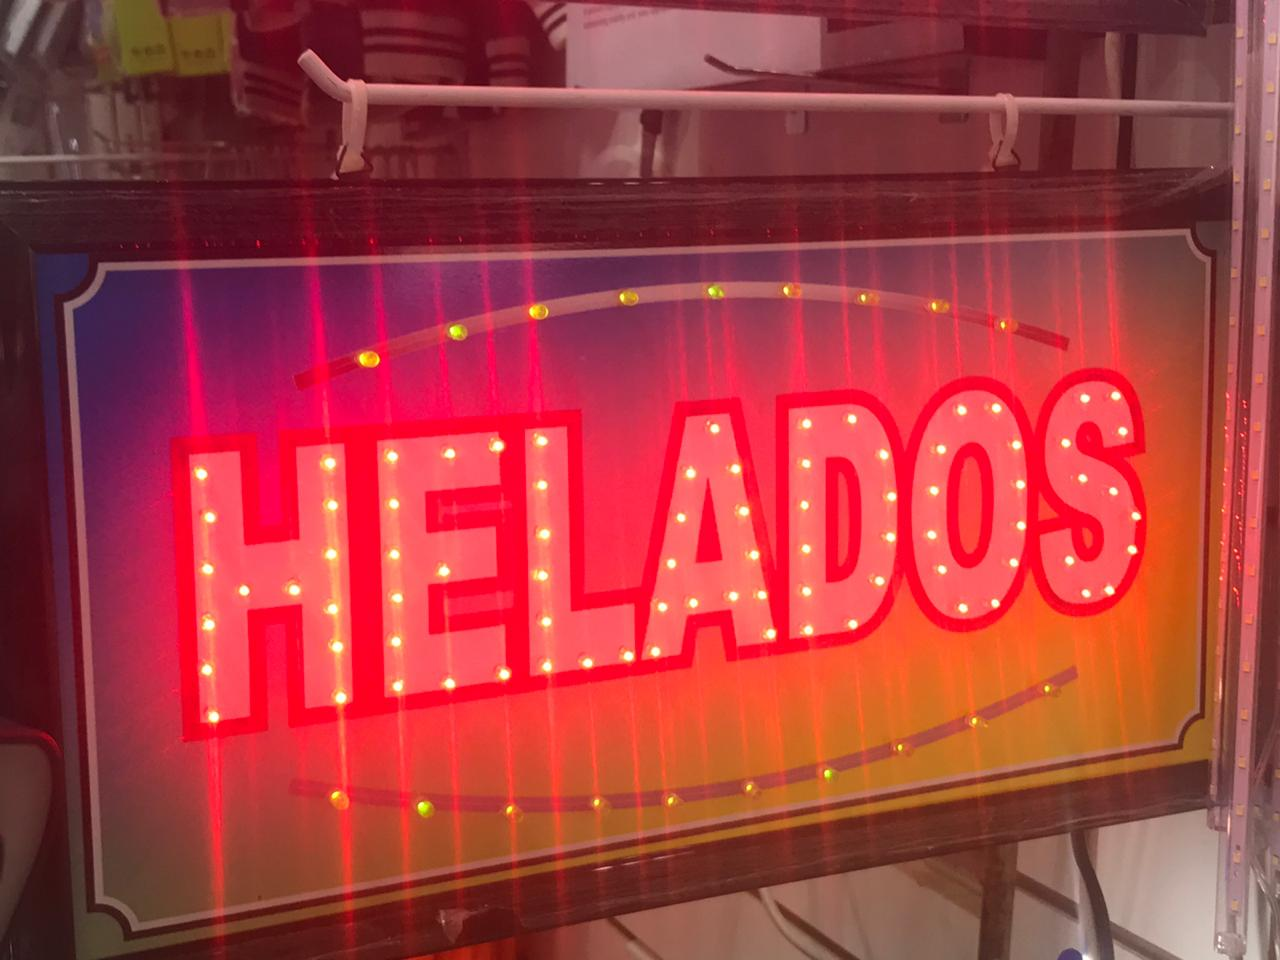 CARTEL HELADOS LED PLOTEADO 220 VOLTS 48 x 25 CM